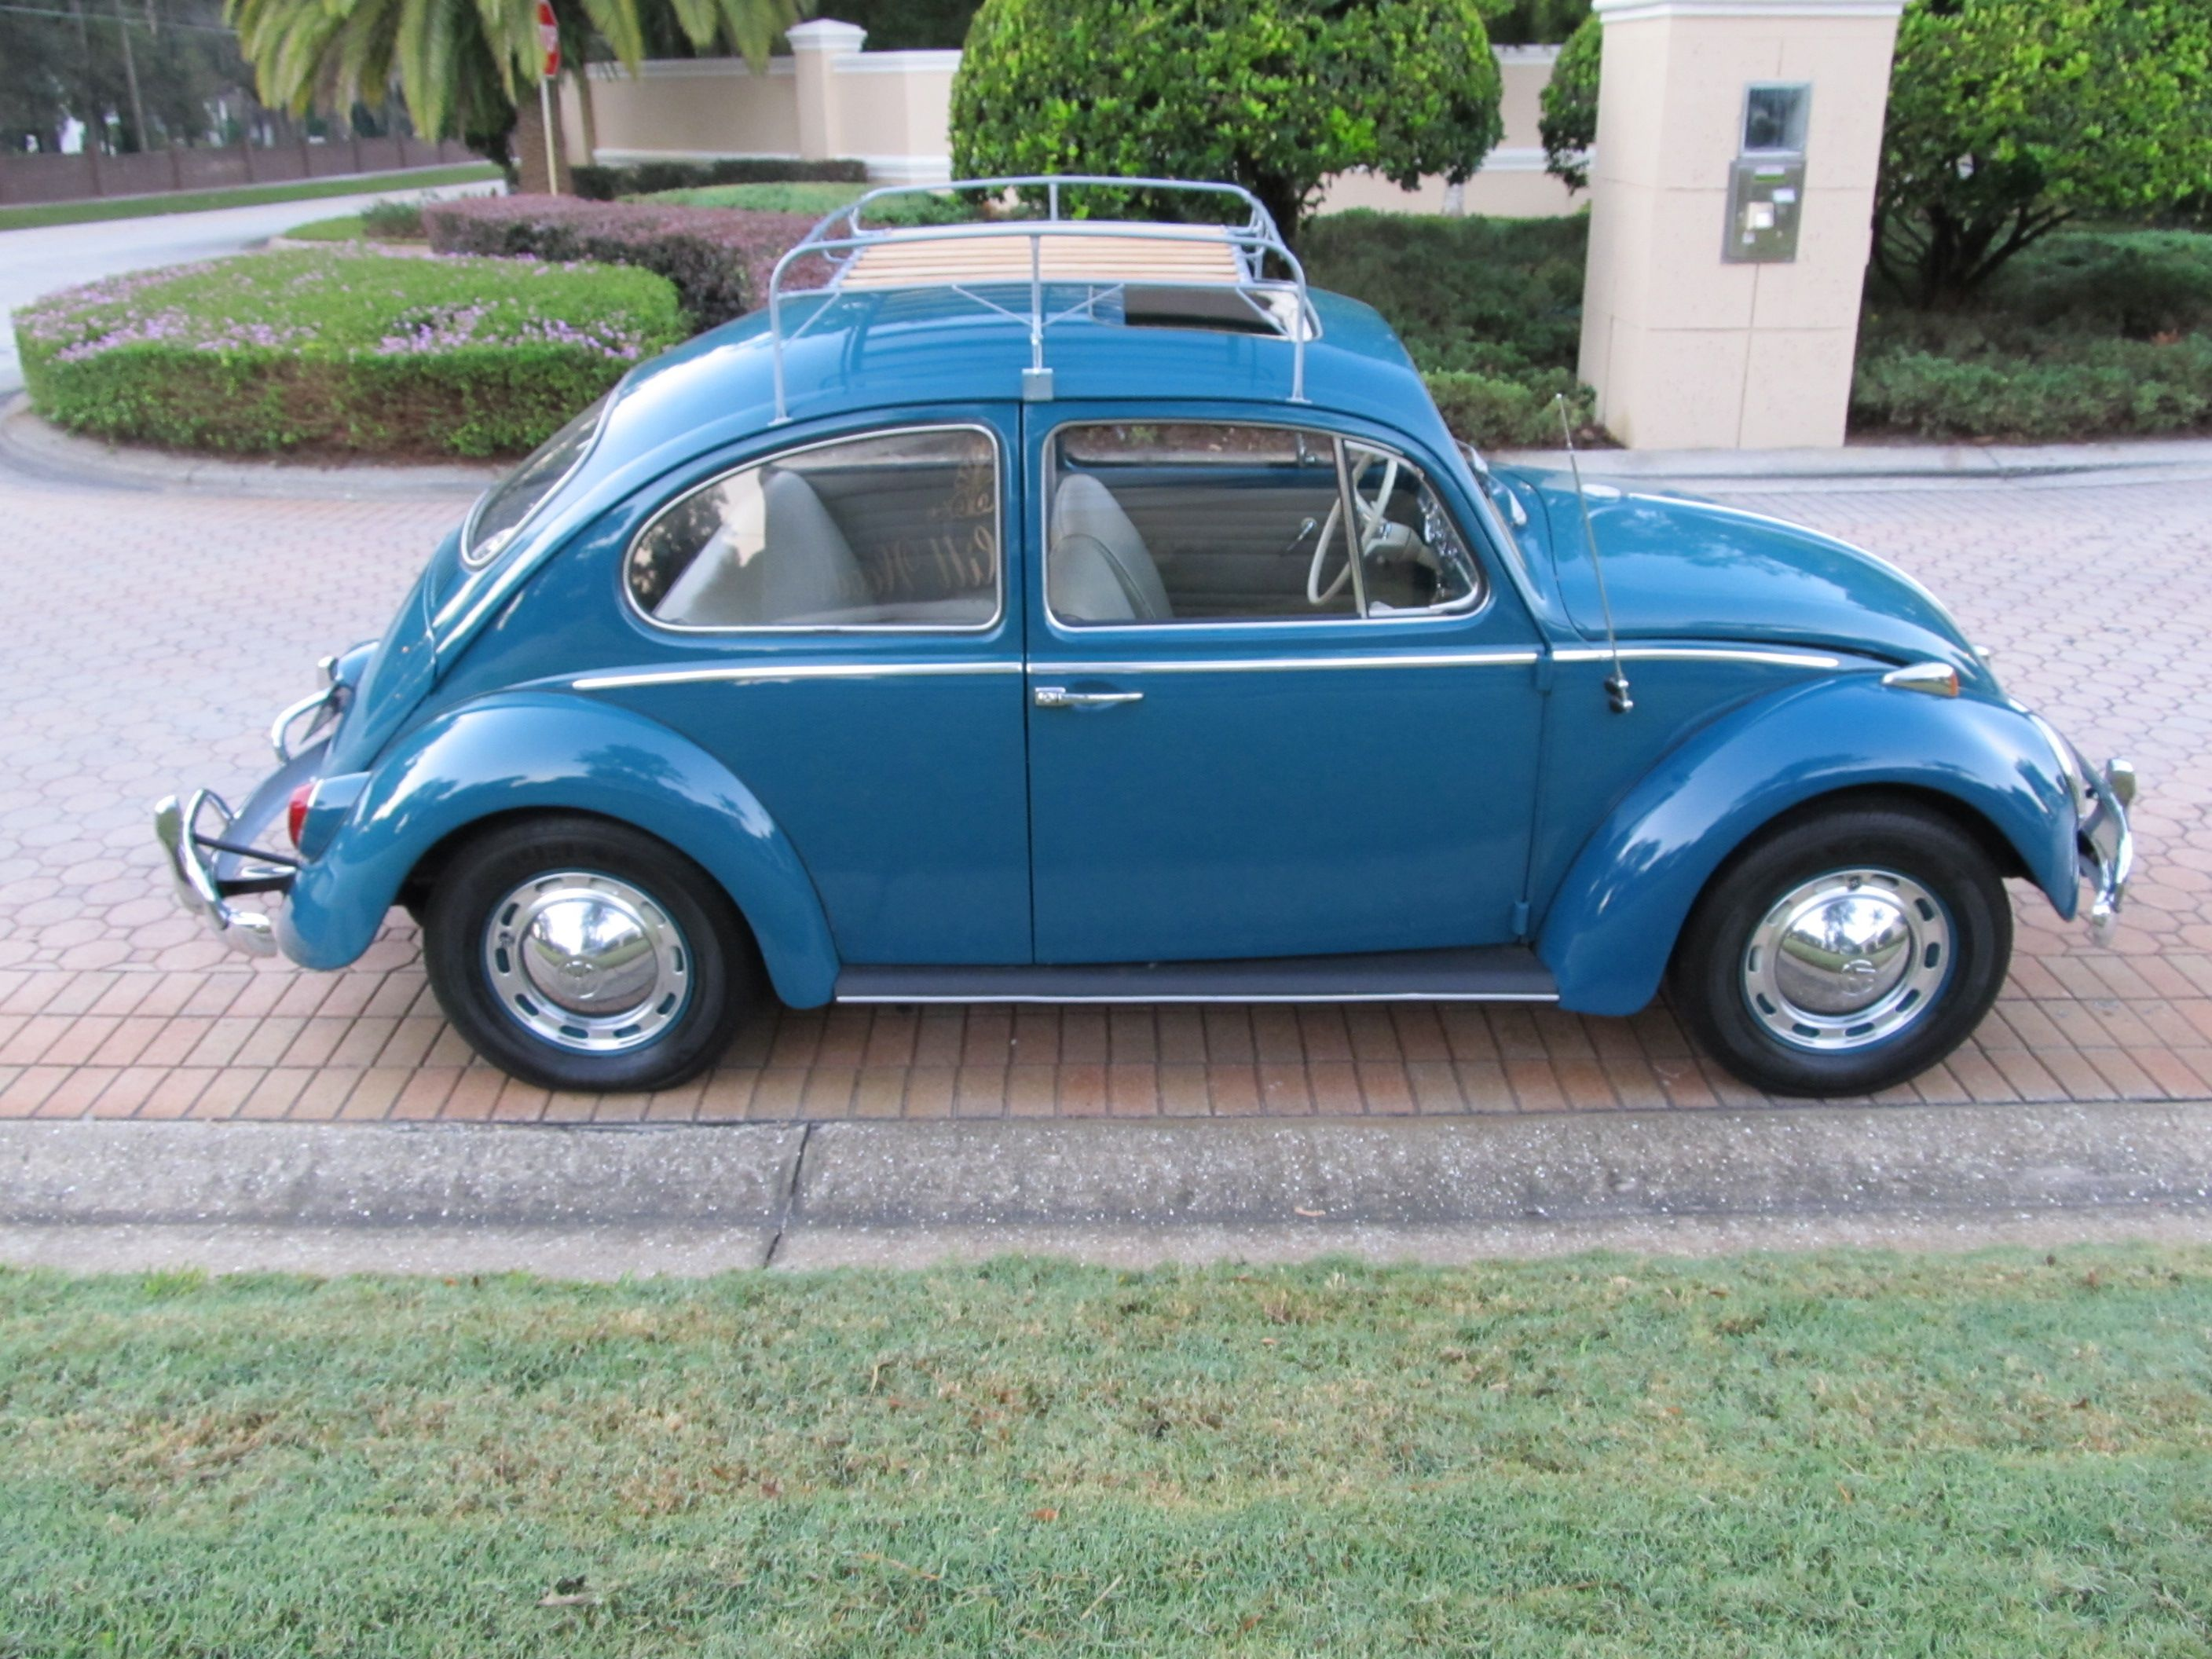 1965 Volkswagen Beetle A Nicely Restored Sunroof Bug Finished In Sea Blue With The New Bone Interior Inc Volkswagen New Beetle Volkswagen Vw Beetle Classic